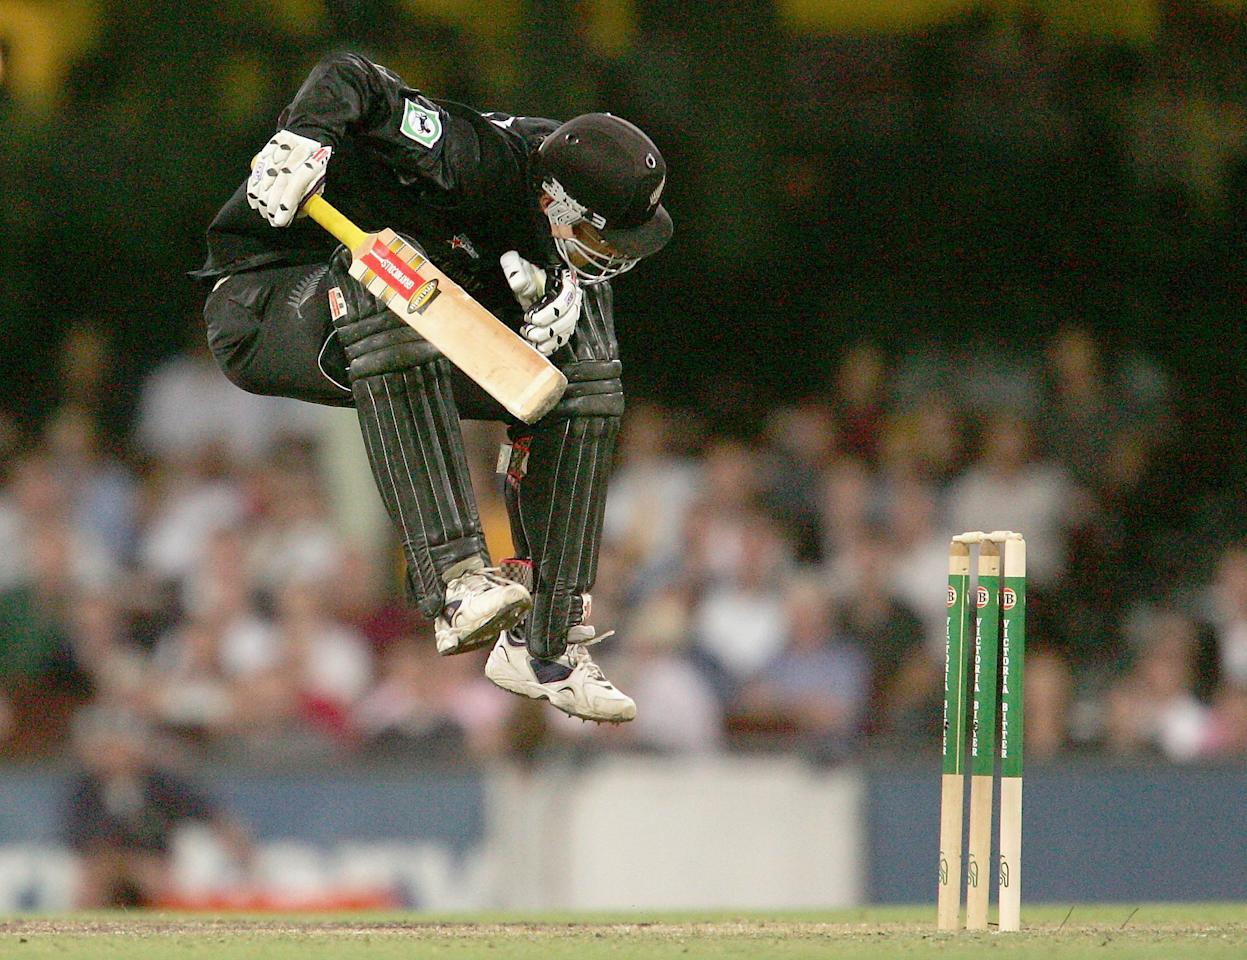 SYDNEY, AUSTRALIA - DECEMBER 8:  Daniel Vettori of New Zealand avoids a bouncer during game two of the Chappell-Hadlee Trophy between Australia and New Zealand played at the Sydney Cricket Ground, December 8, 2004 in Sydney, Australia. (Photo by Adam Pretty/Getty Images)